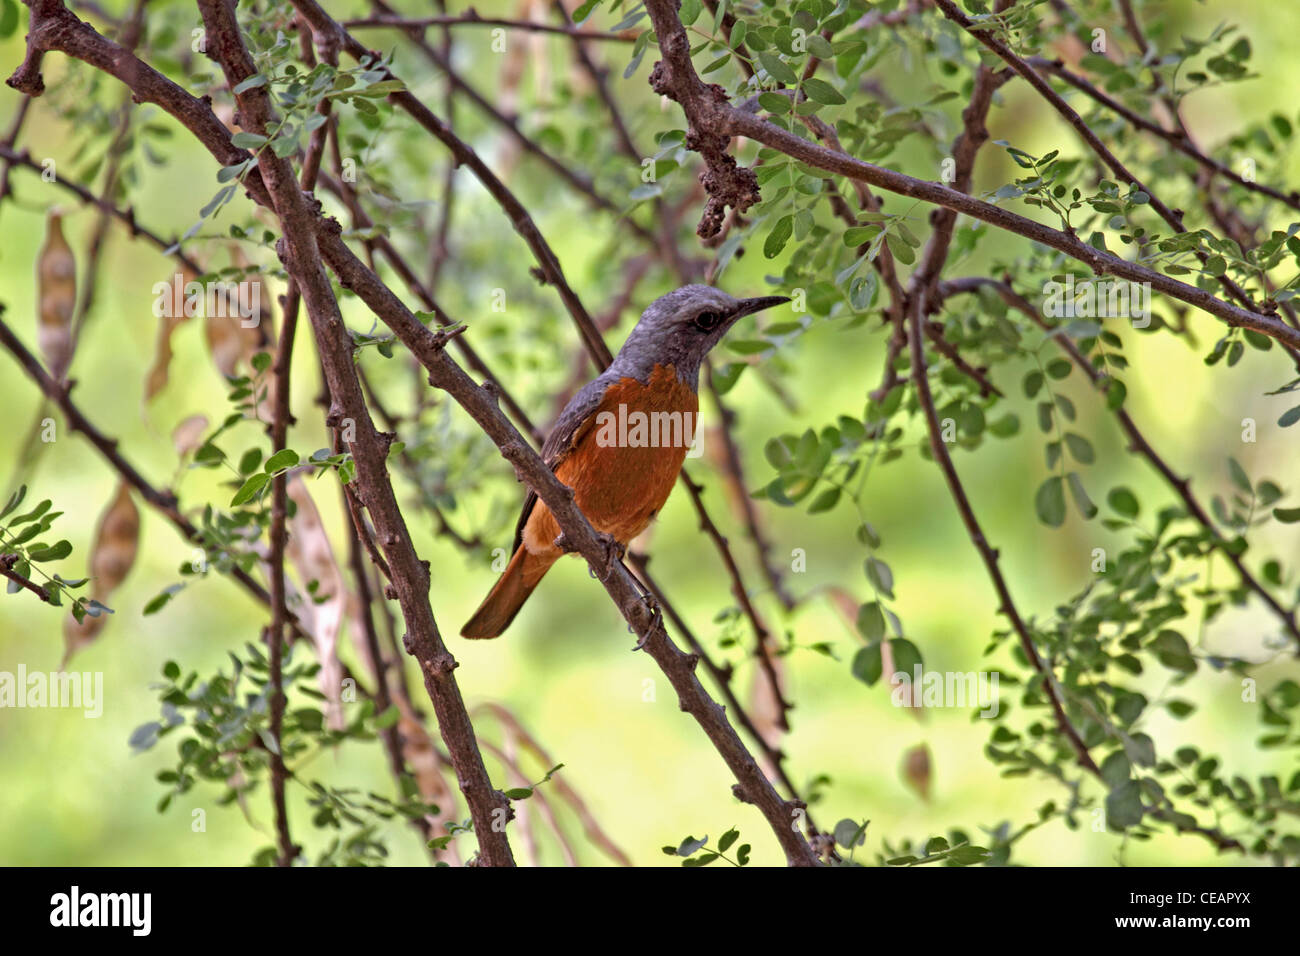 Short toed rock thrush in Namibia - Stock Image